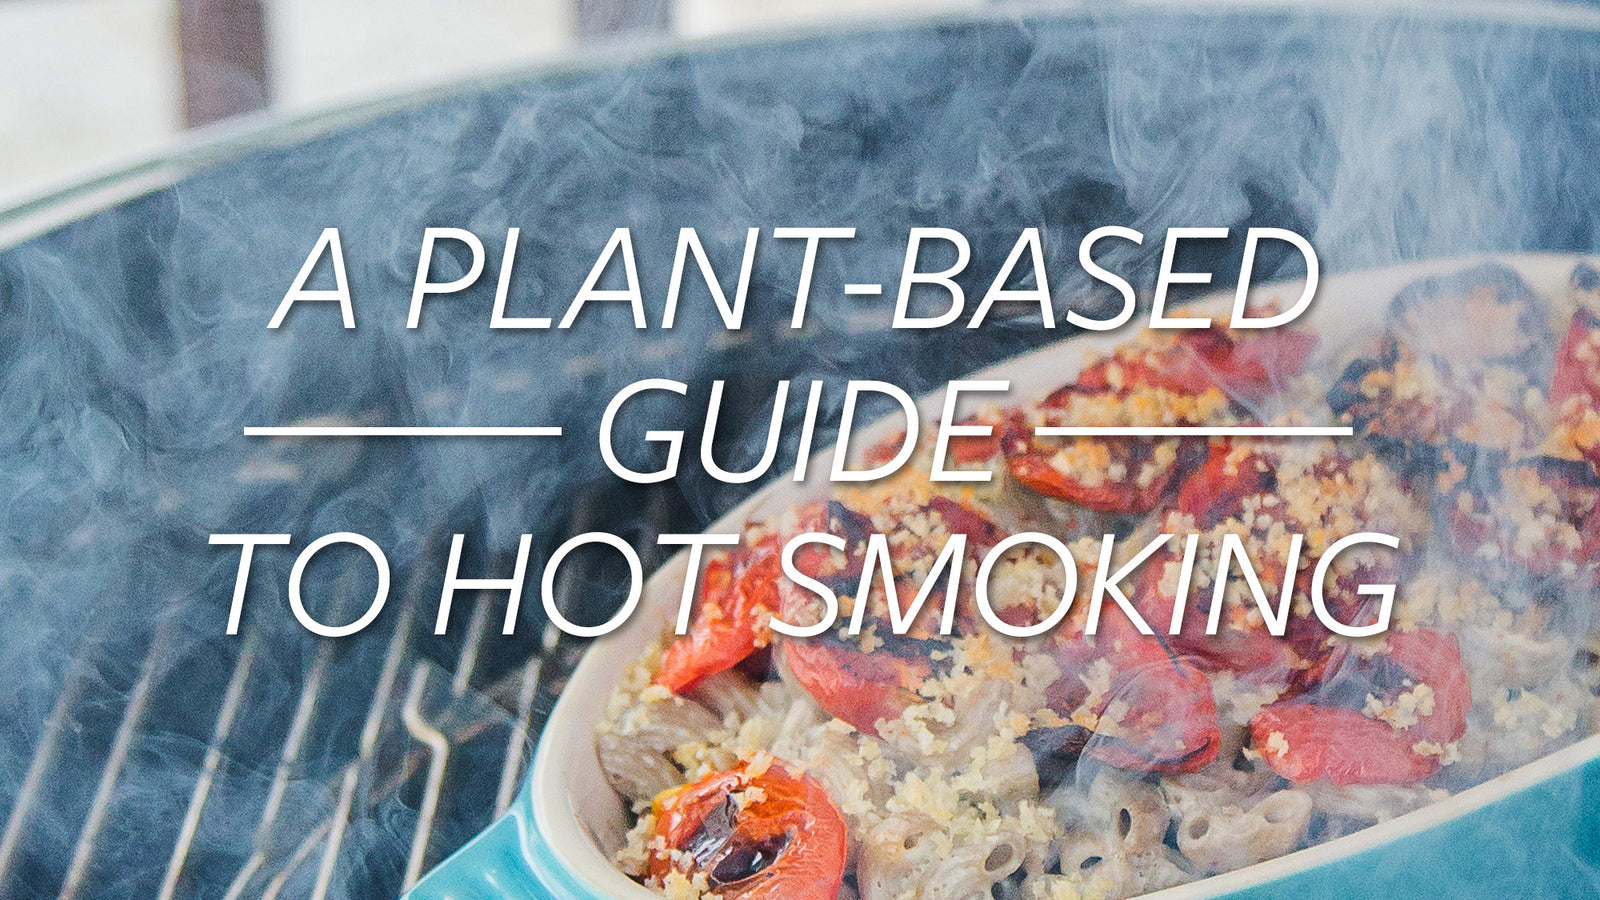 A Plant-Based Guide to Hot Smoking